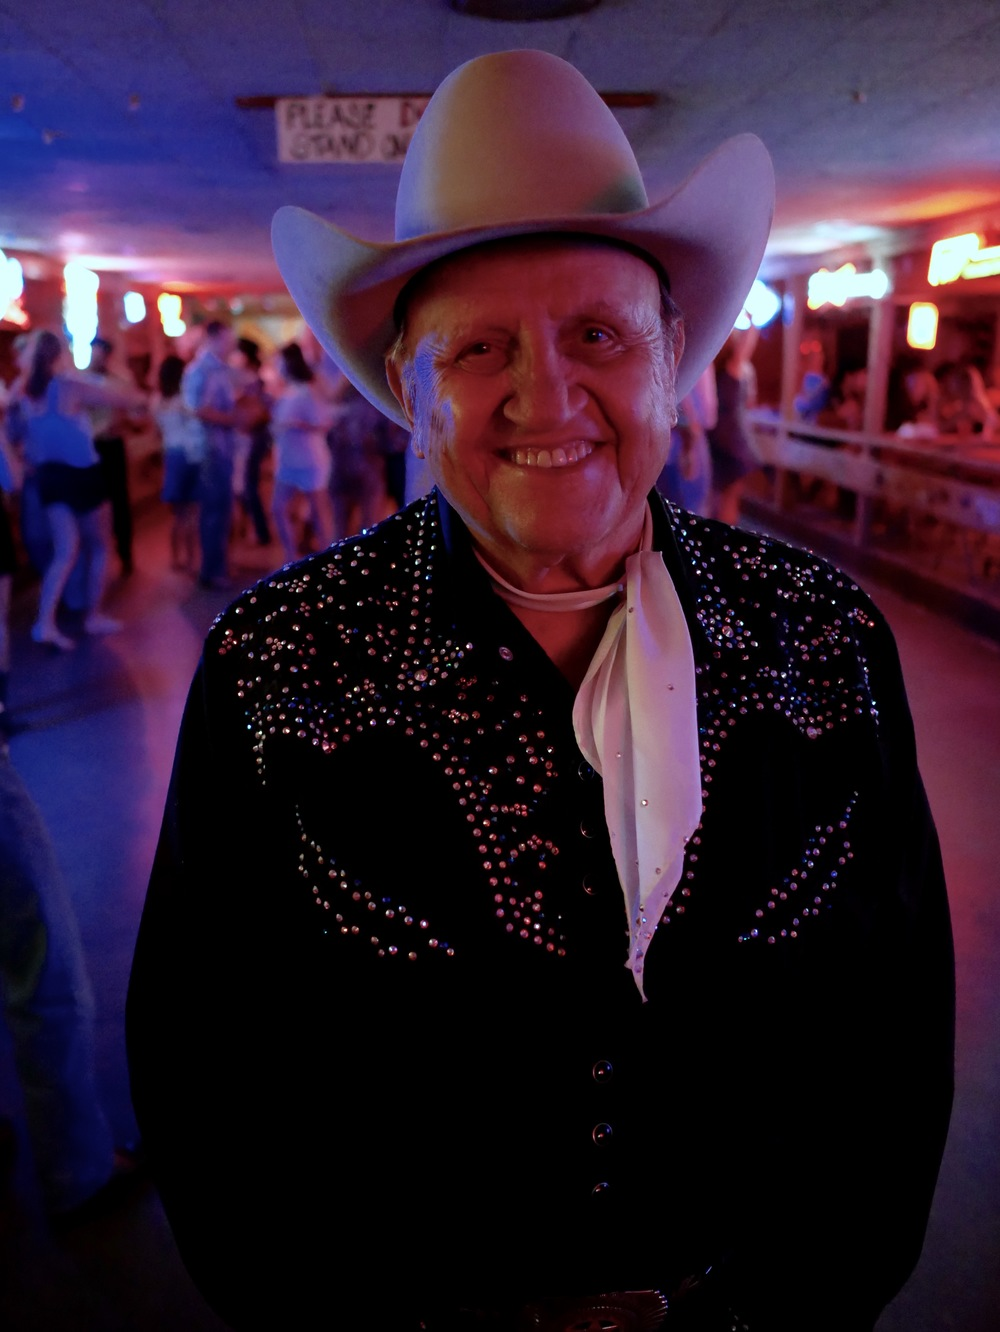 Portrait of James White the Honkey Tonk owner